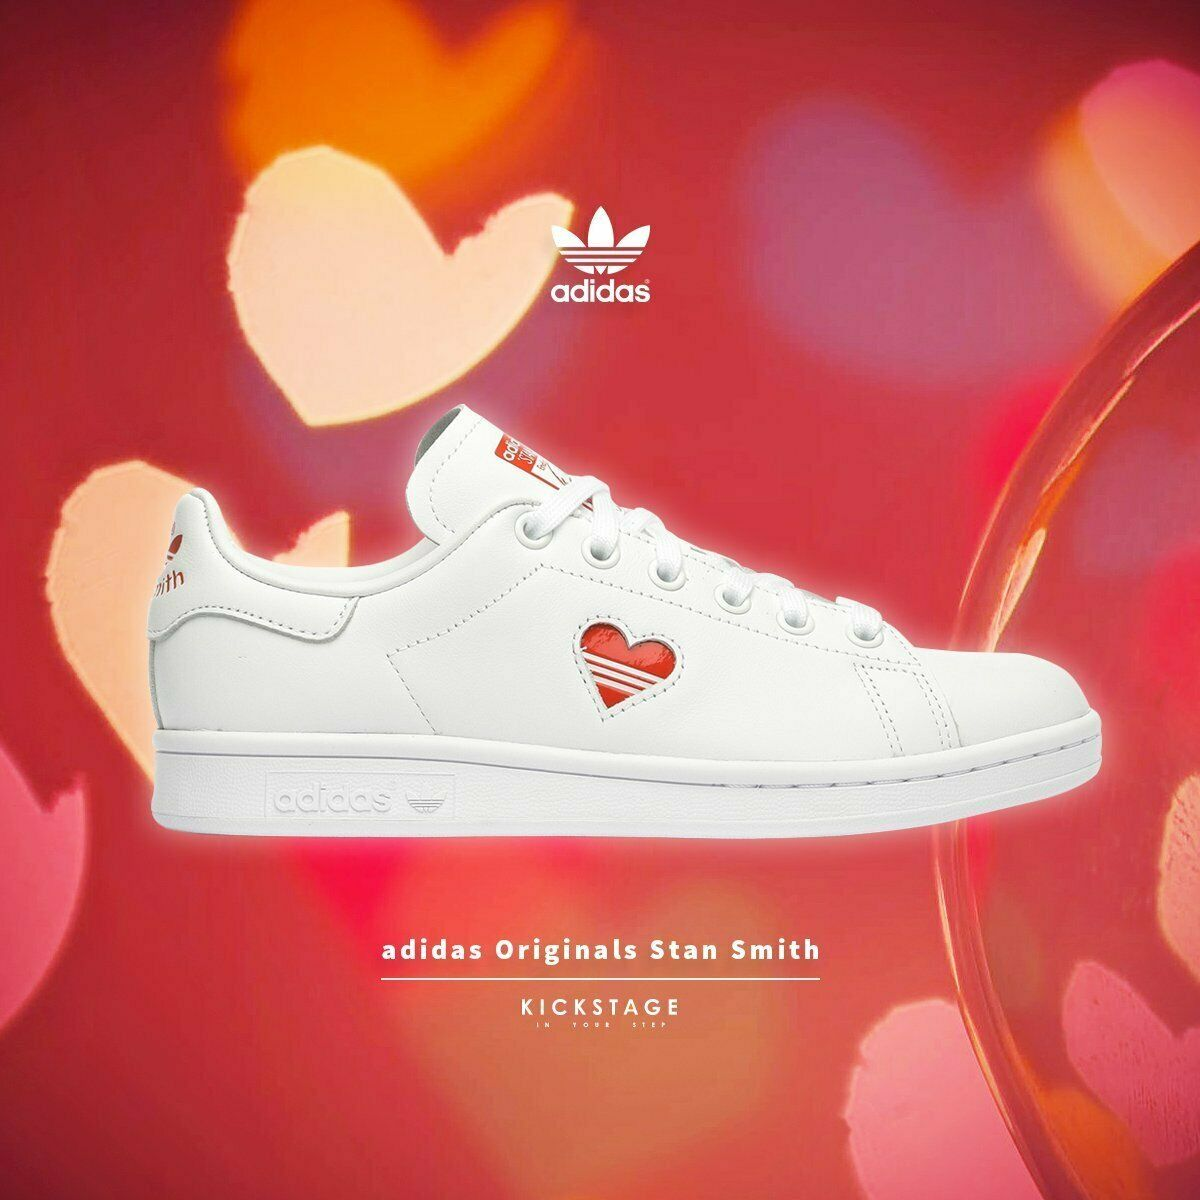 Adidas Originals Femme Stan Smith W Vday saint valentin ...